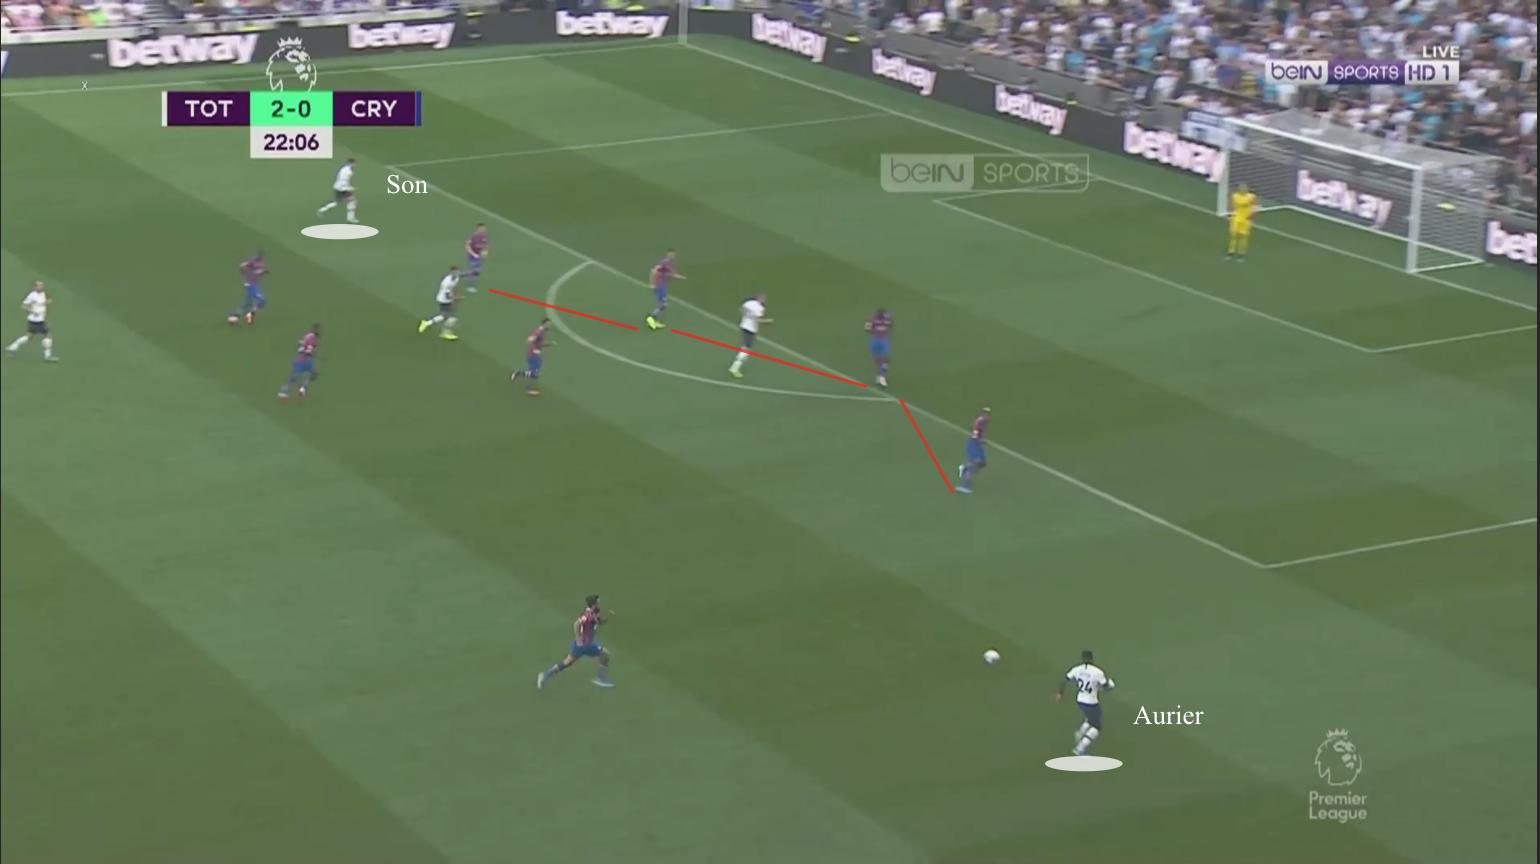 Premier League 2019/20: Tottenham Hotspur vs Crystal Palace - tactical analysis tactics